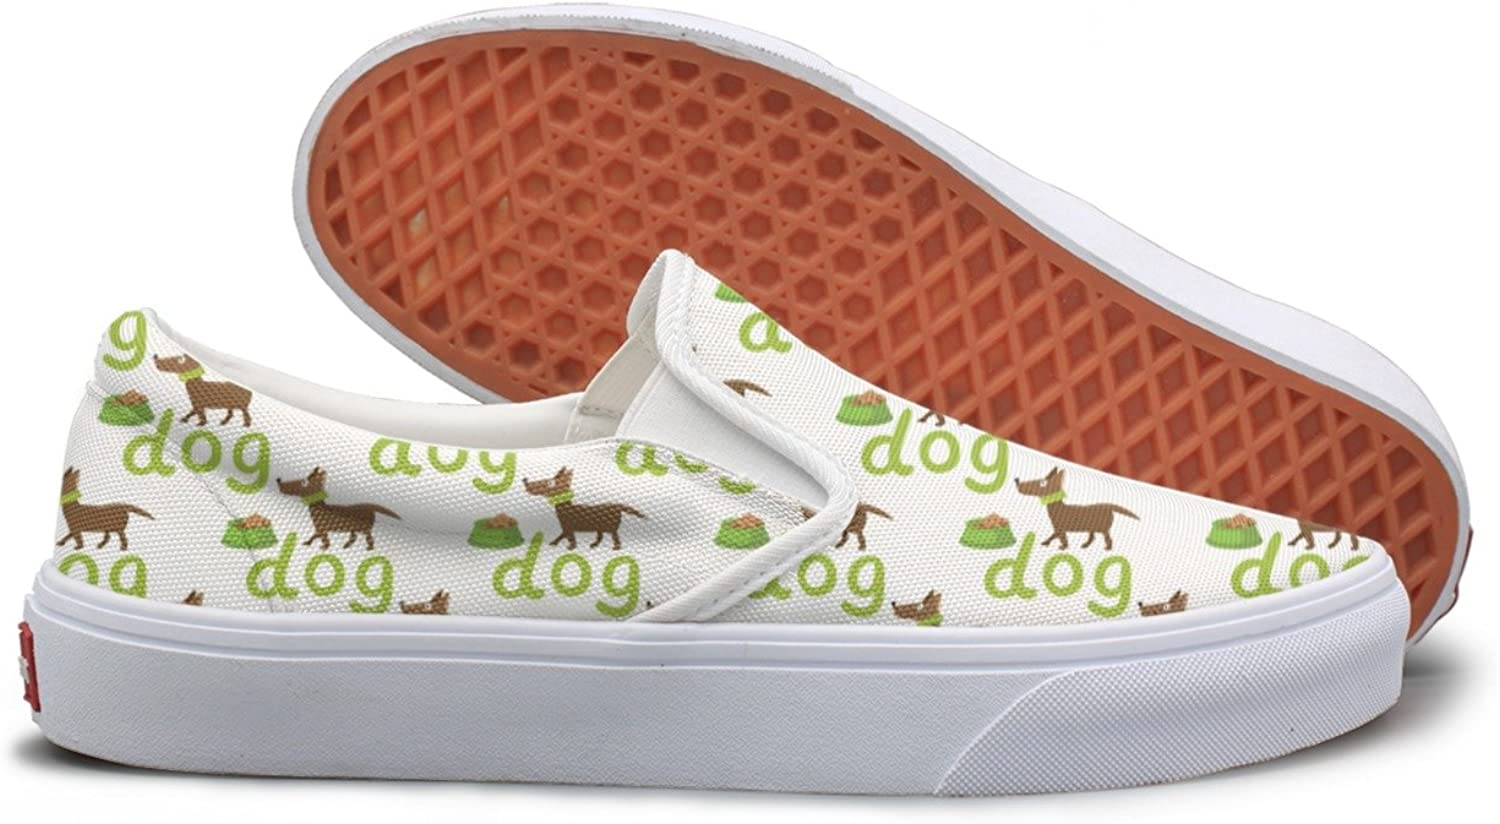 Lalige Happy Dog with Bowl Womens Classic Canvas Slip-ONS Walking shoes